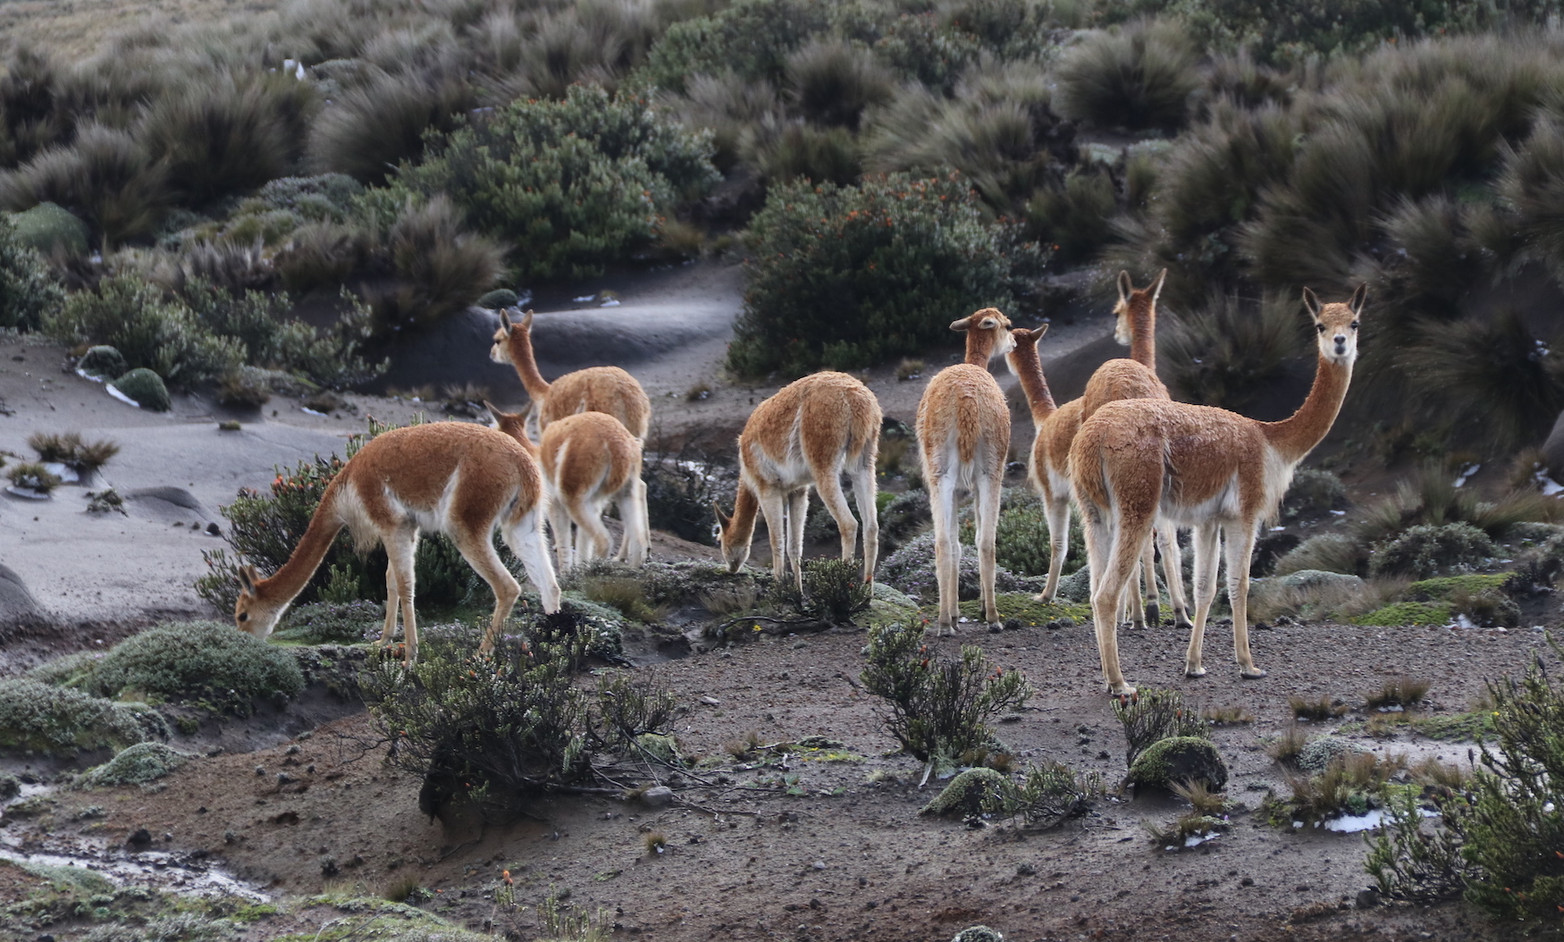 Part of a vicuña (Vicuña vicuña) bachelor herd, Chimborazo Faunal Reserve